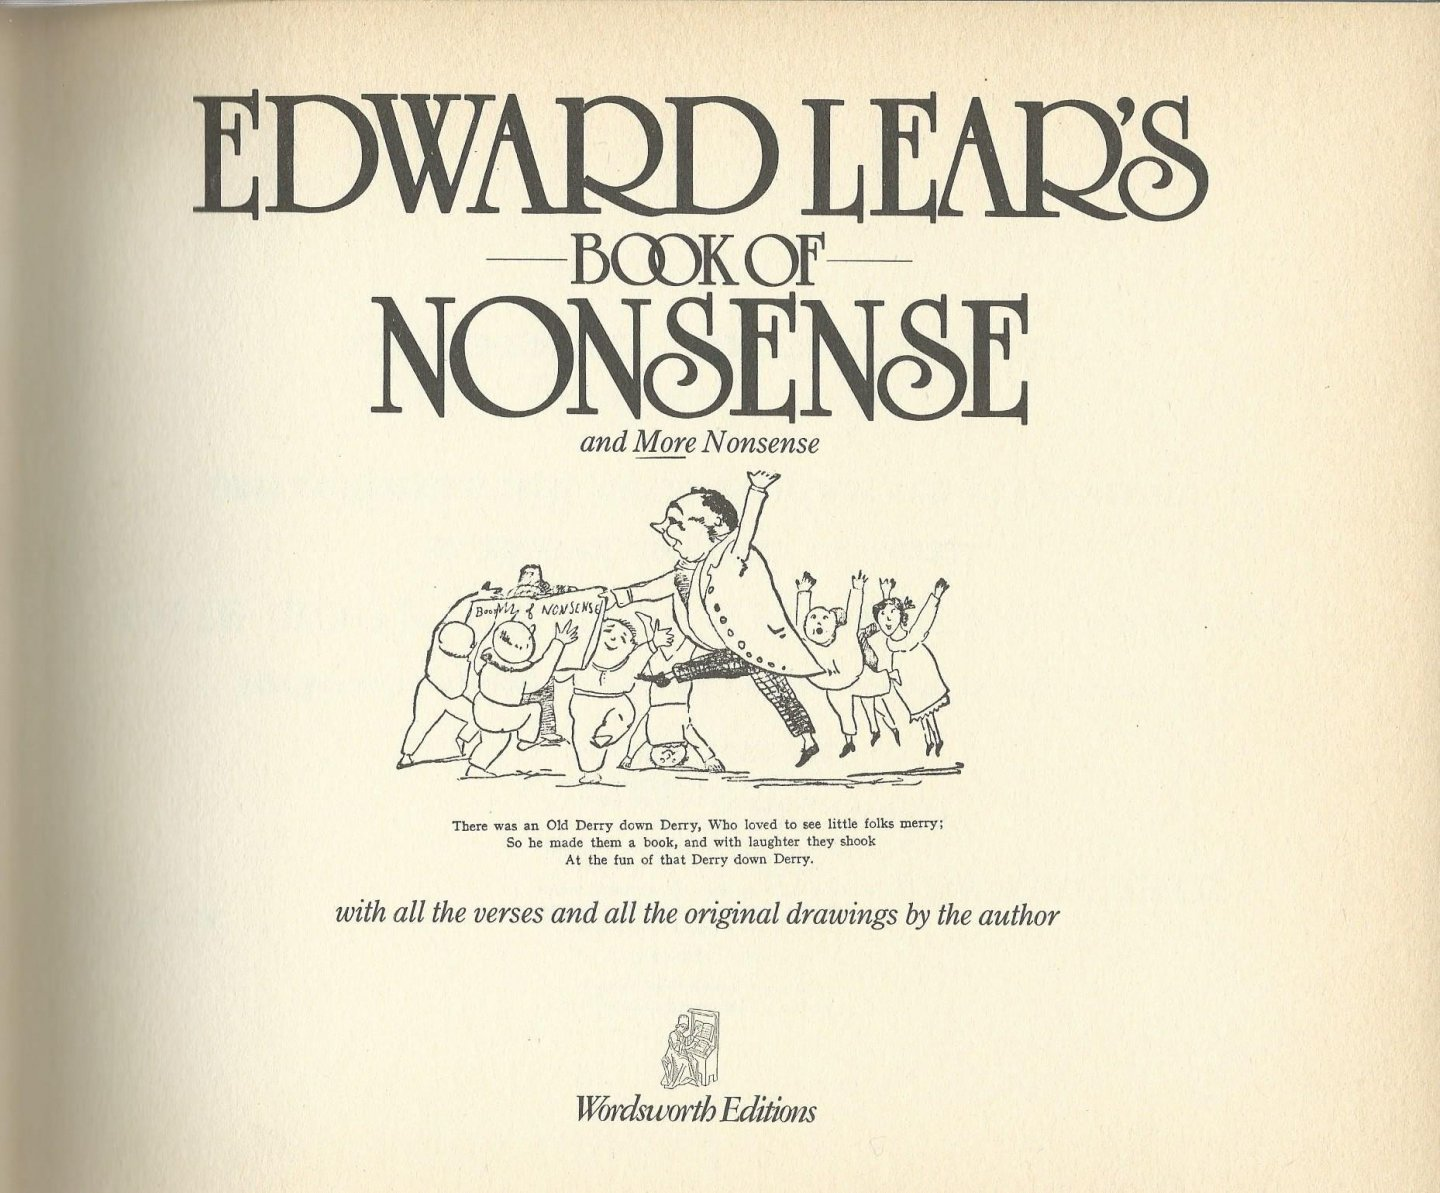 Lear, Edward - Book of nonsense and more nonsense, with all the verses and all the original drawings by the author